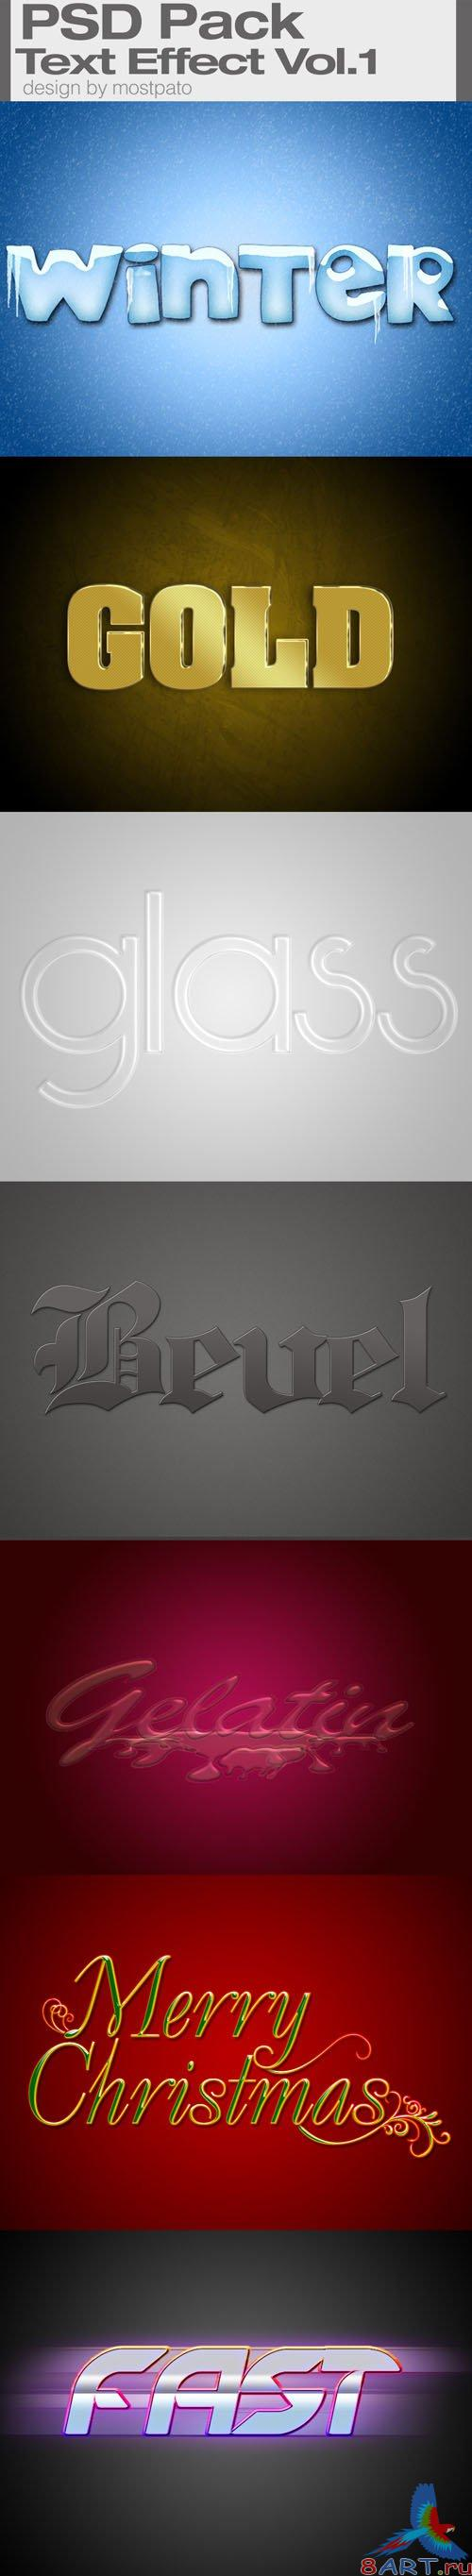 Text Effect Styles PSD Template #1